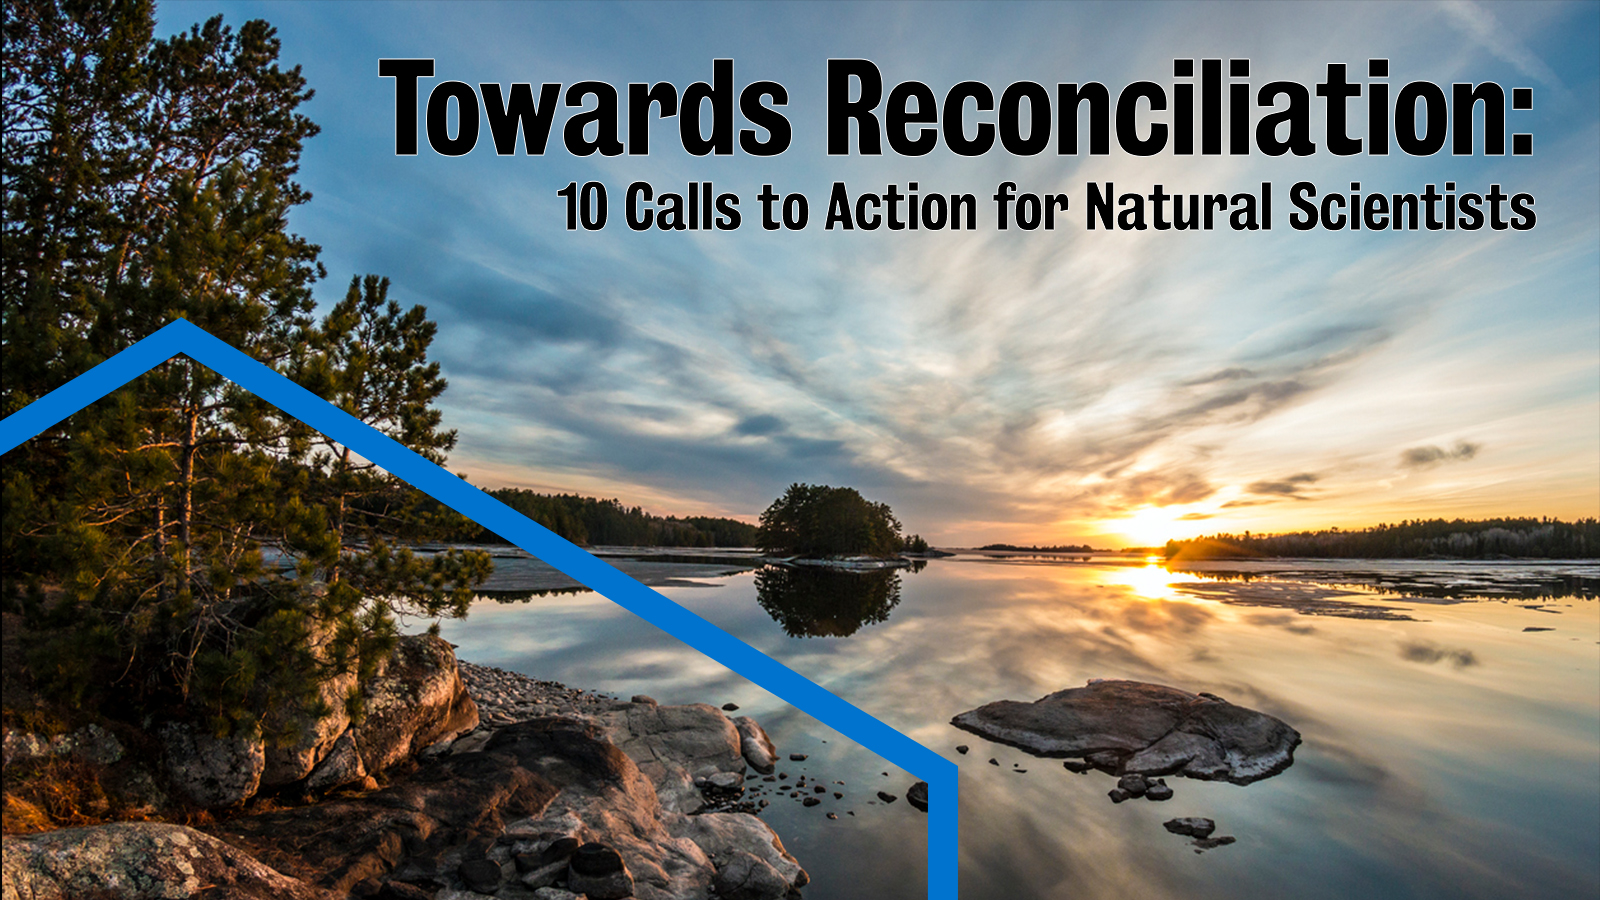 Towards Reconciliation: 10 Calls to Action for Natural Scientists. Background image: sunrise over a lake